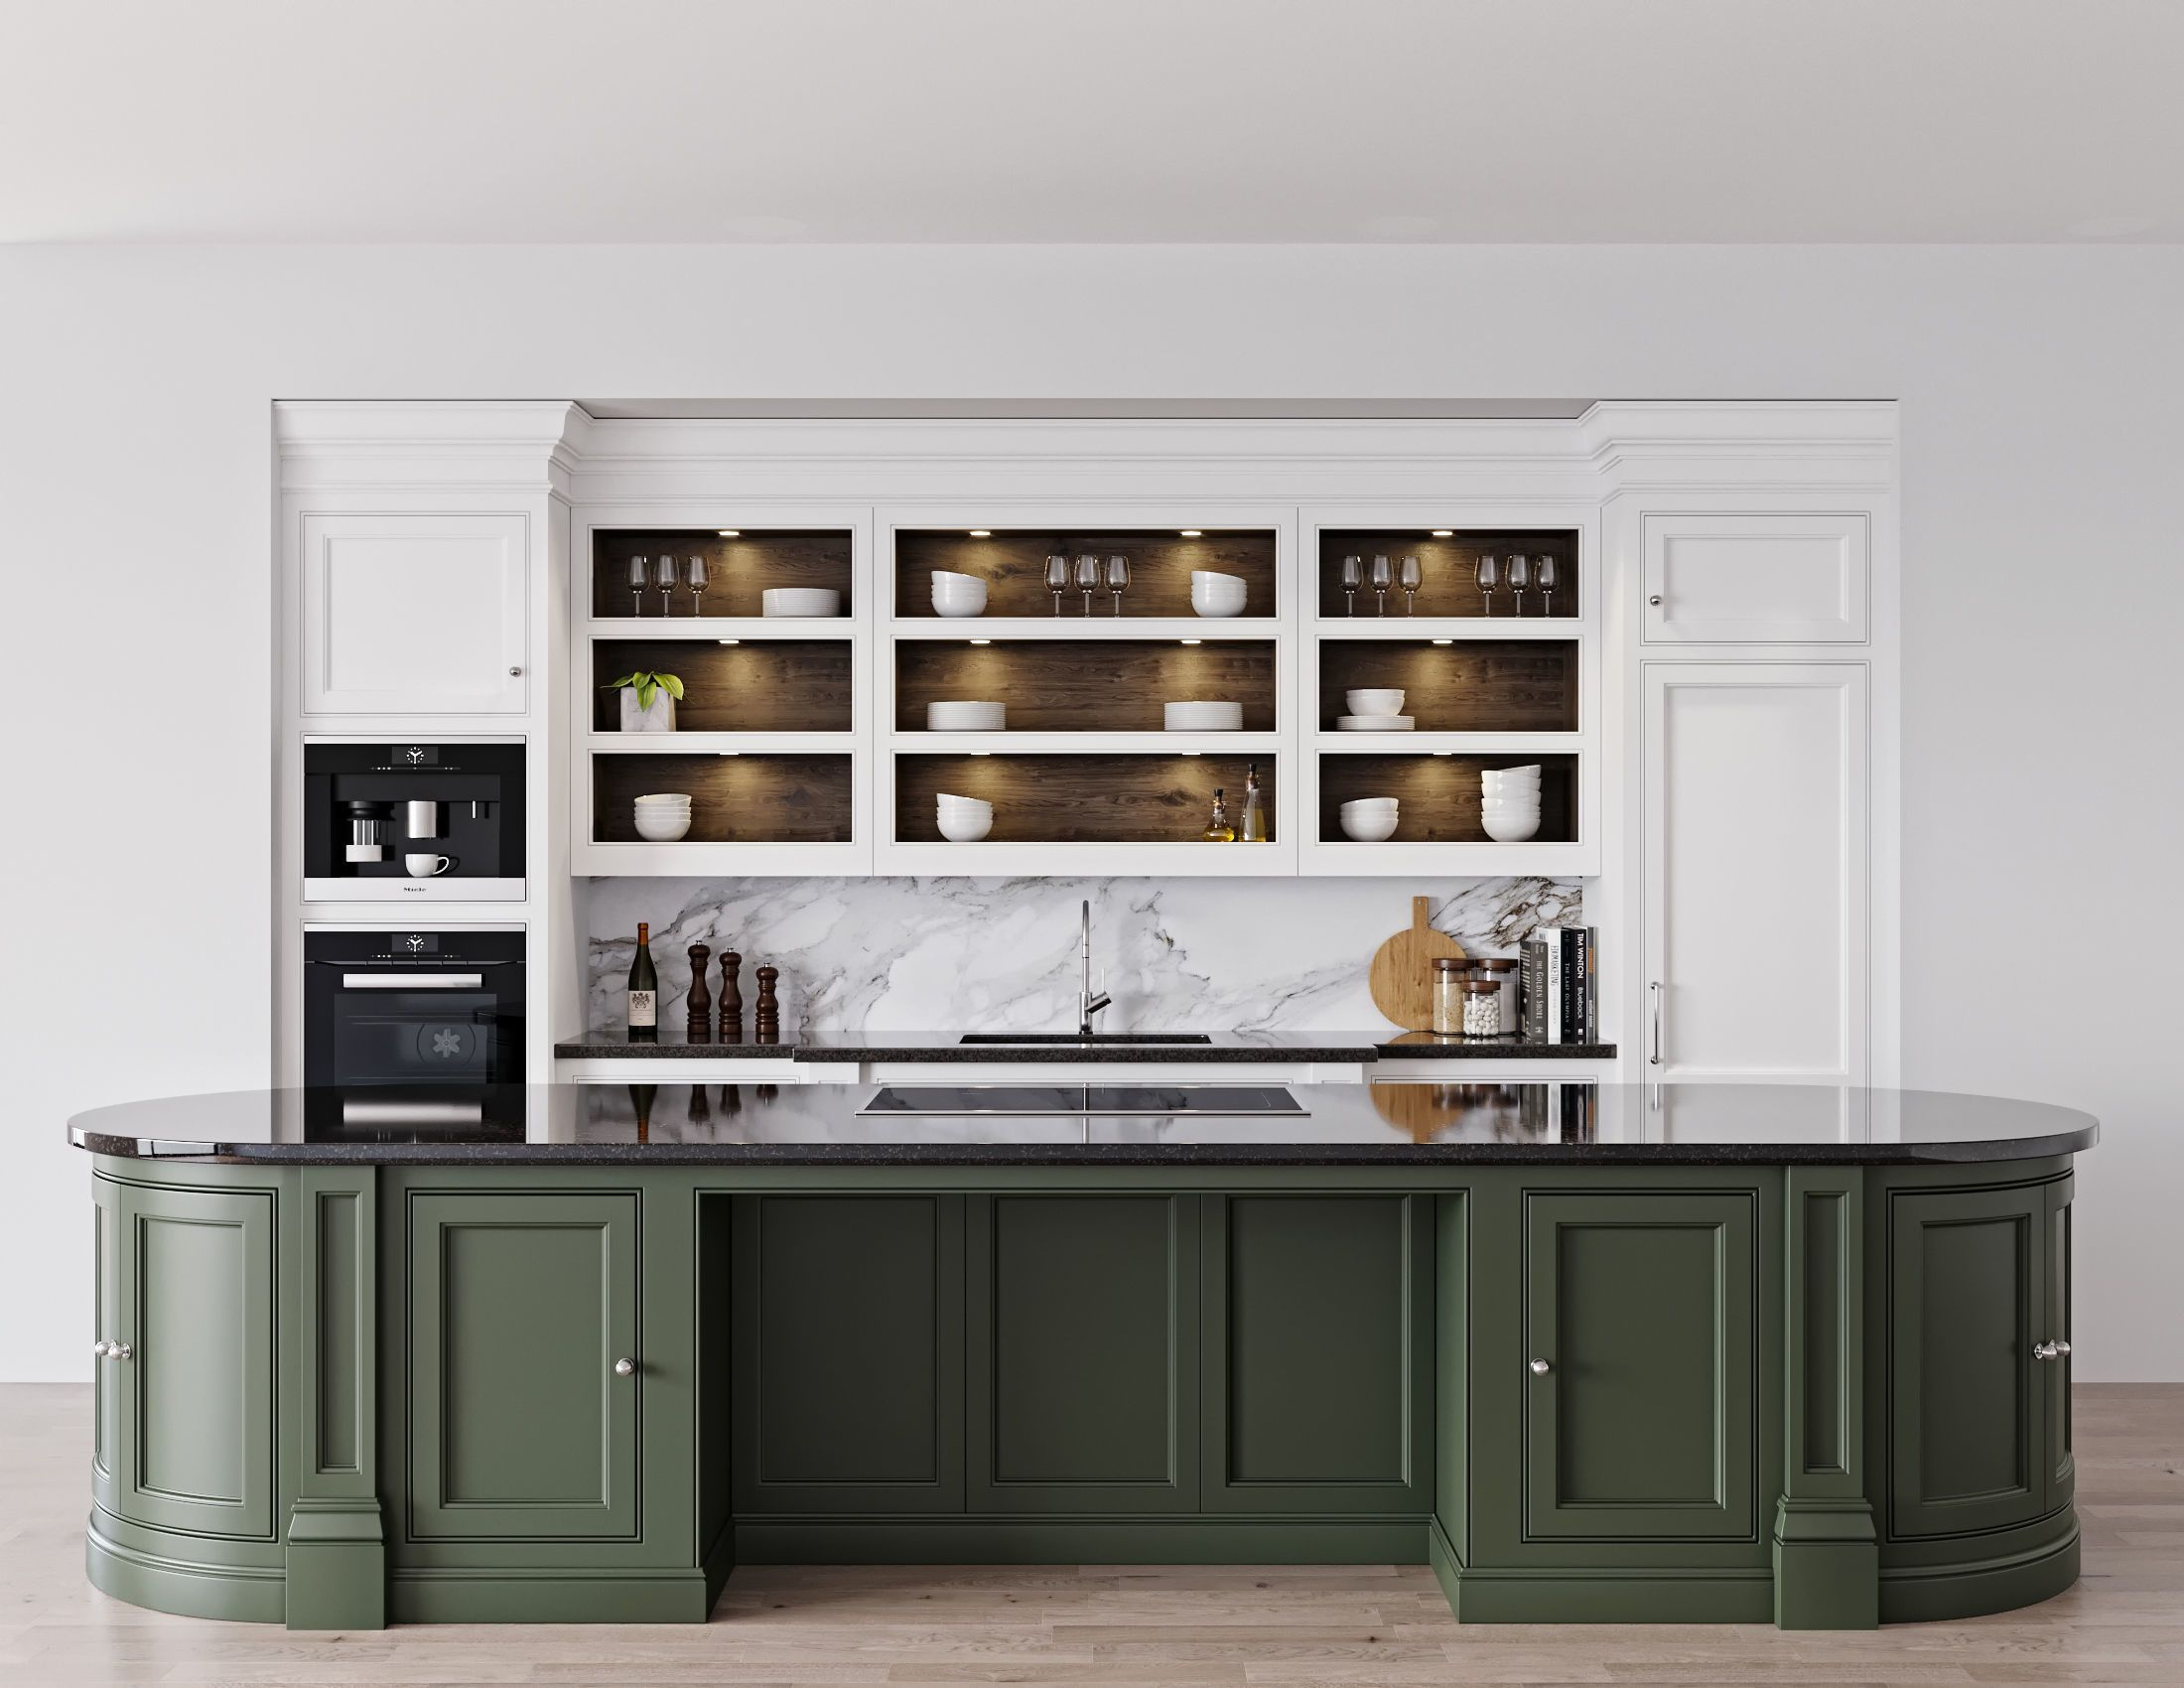 Kitchen By Tom Howley 3 3d Model In 2020 Kitchen Furniture Design Modern Kitchen Interiors Kitchen Interior